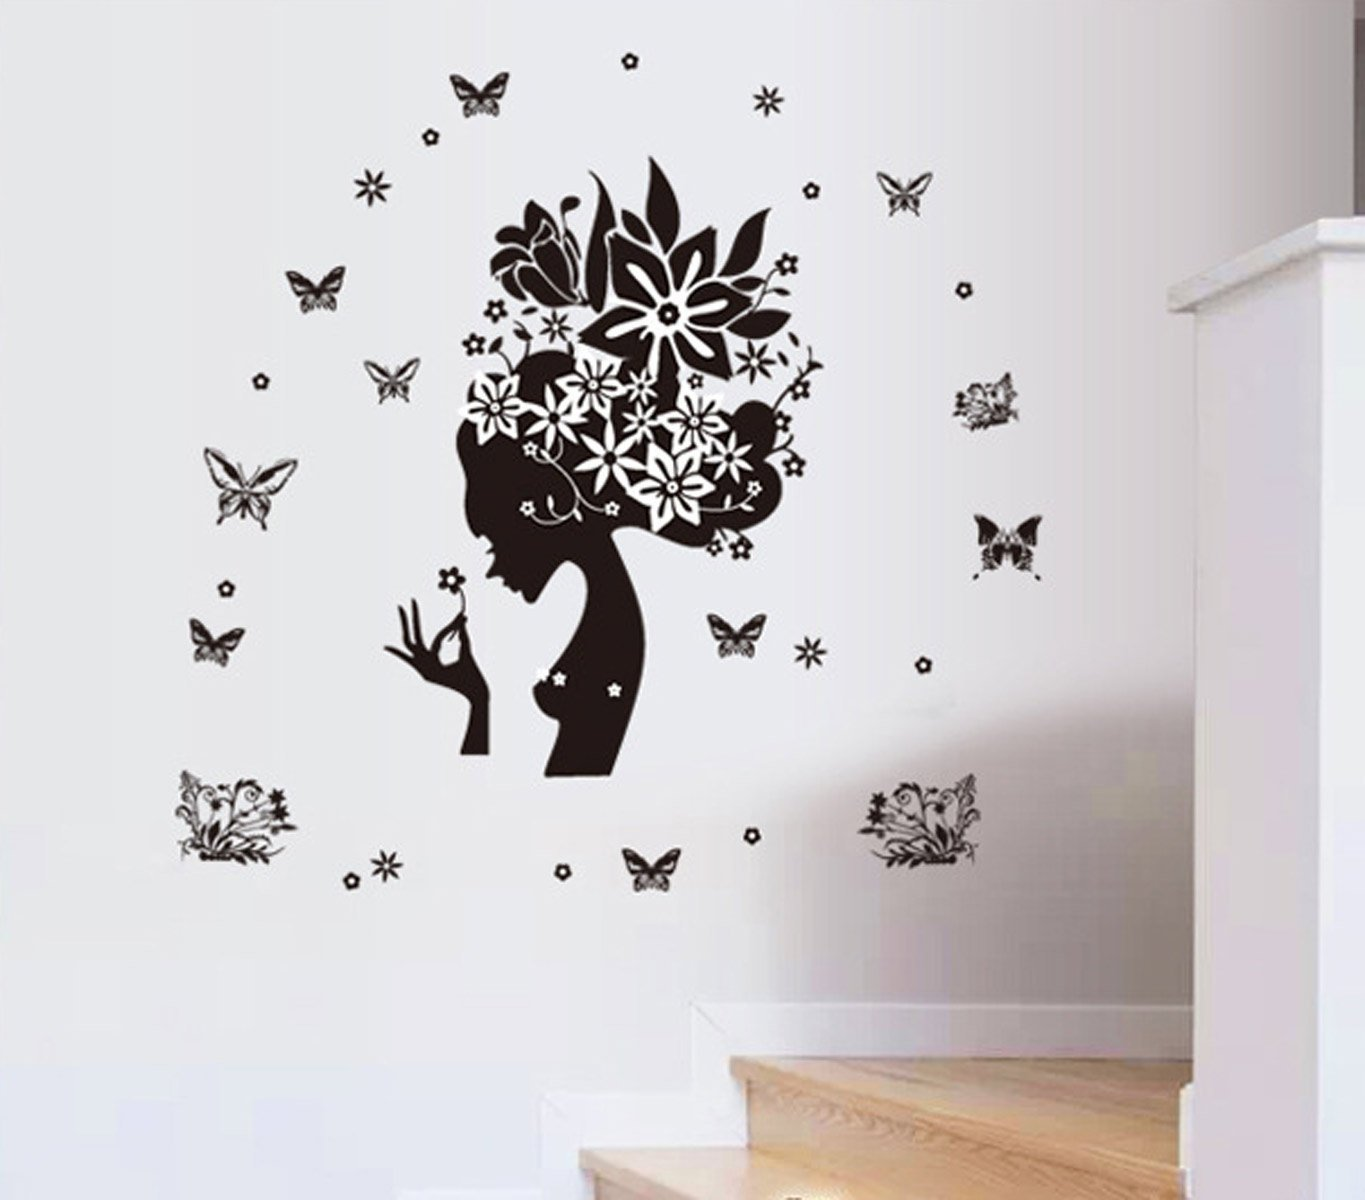 New Wayzon Pretty Butterfly Flower Fairy Girl Removable PVC Wall Sticker  Home Decor Decals     Amazon.com